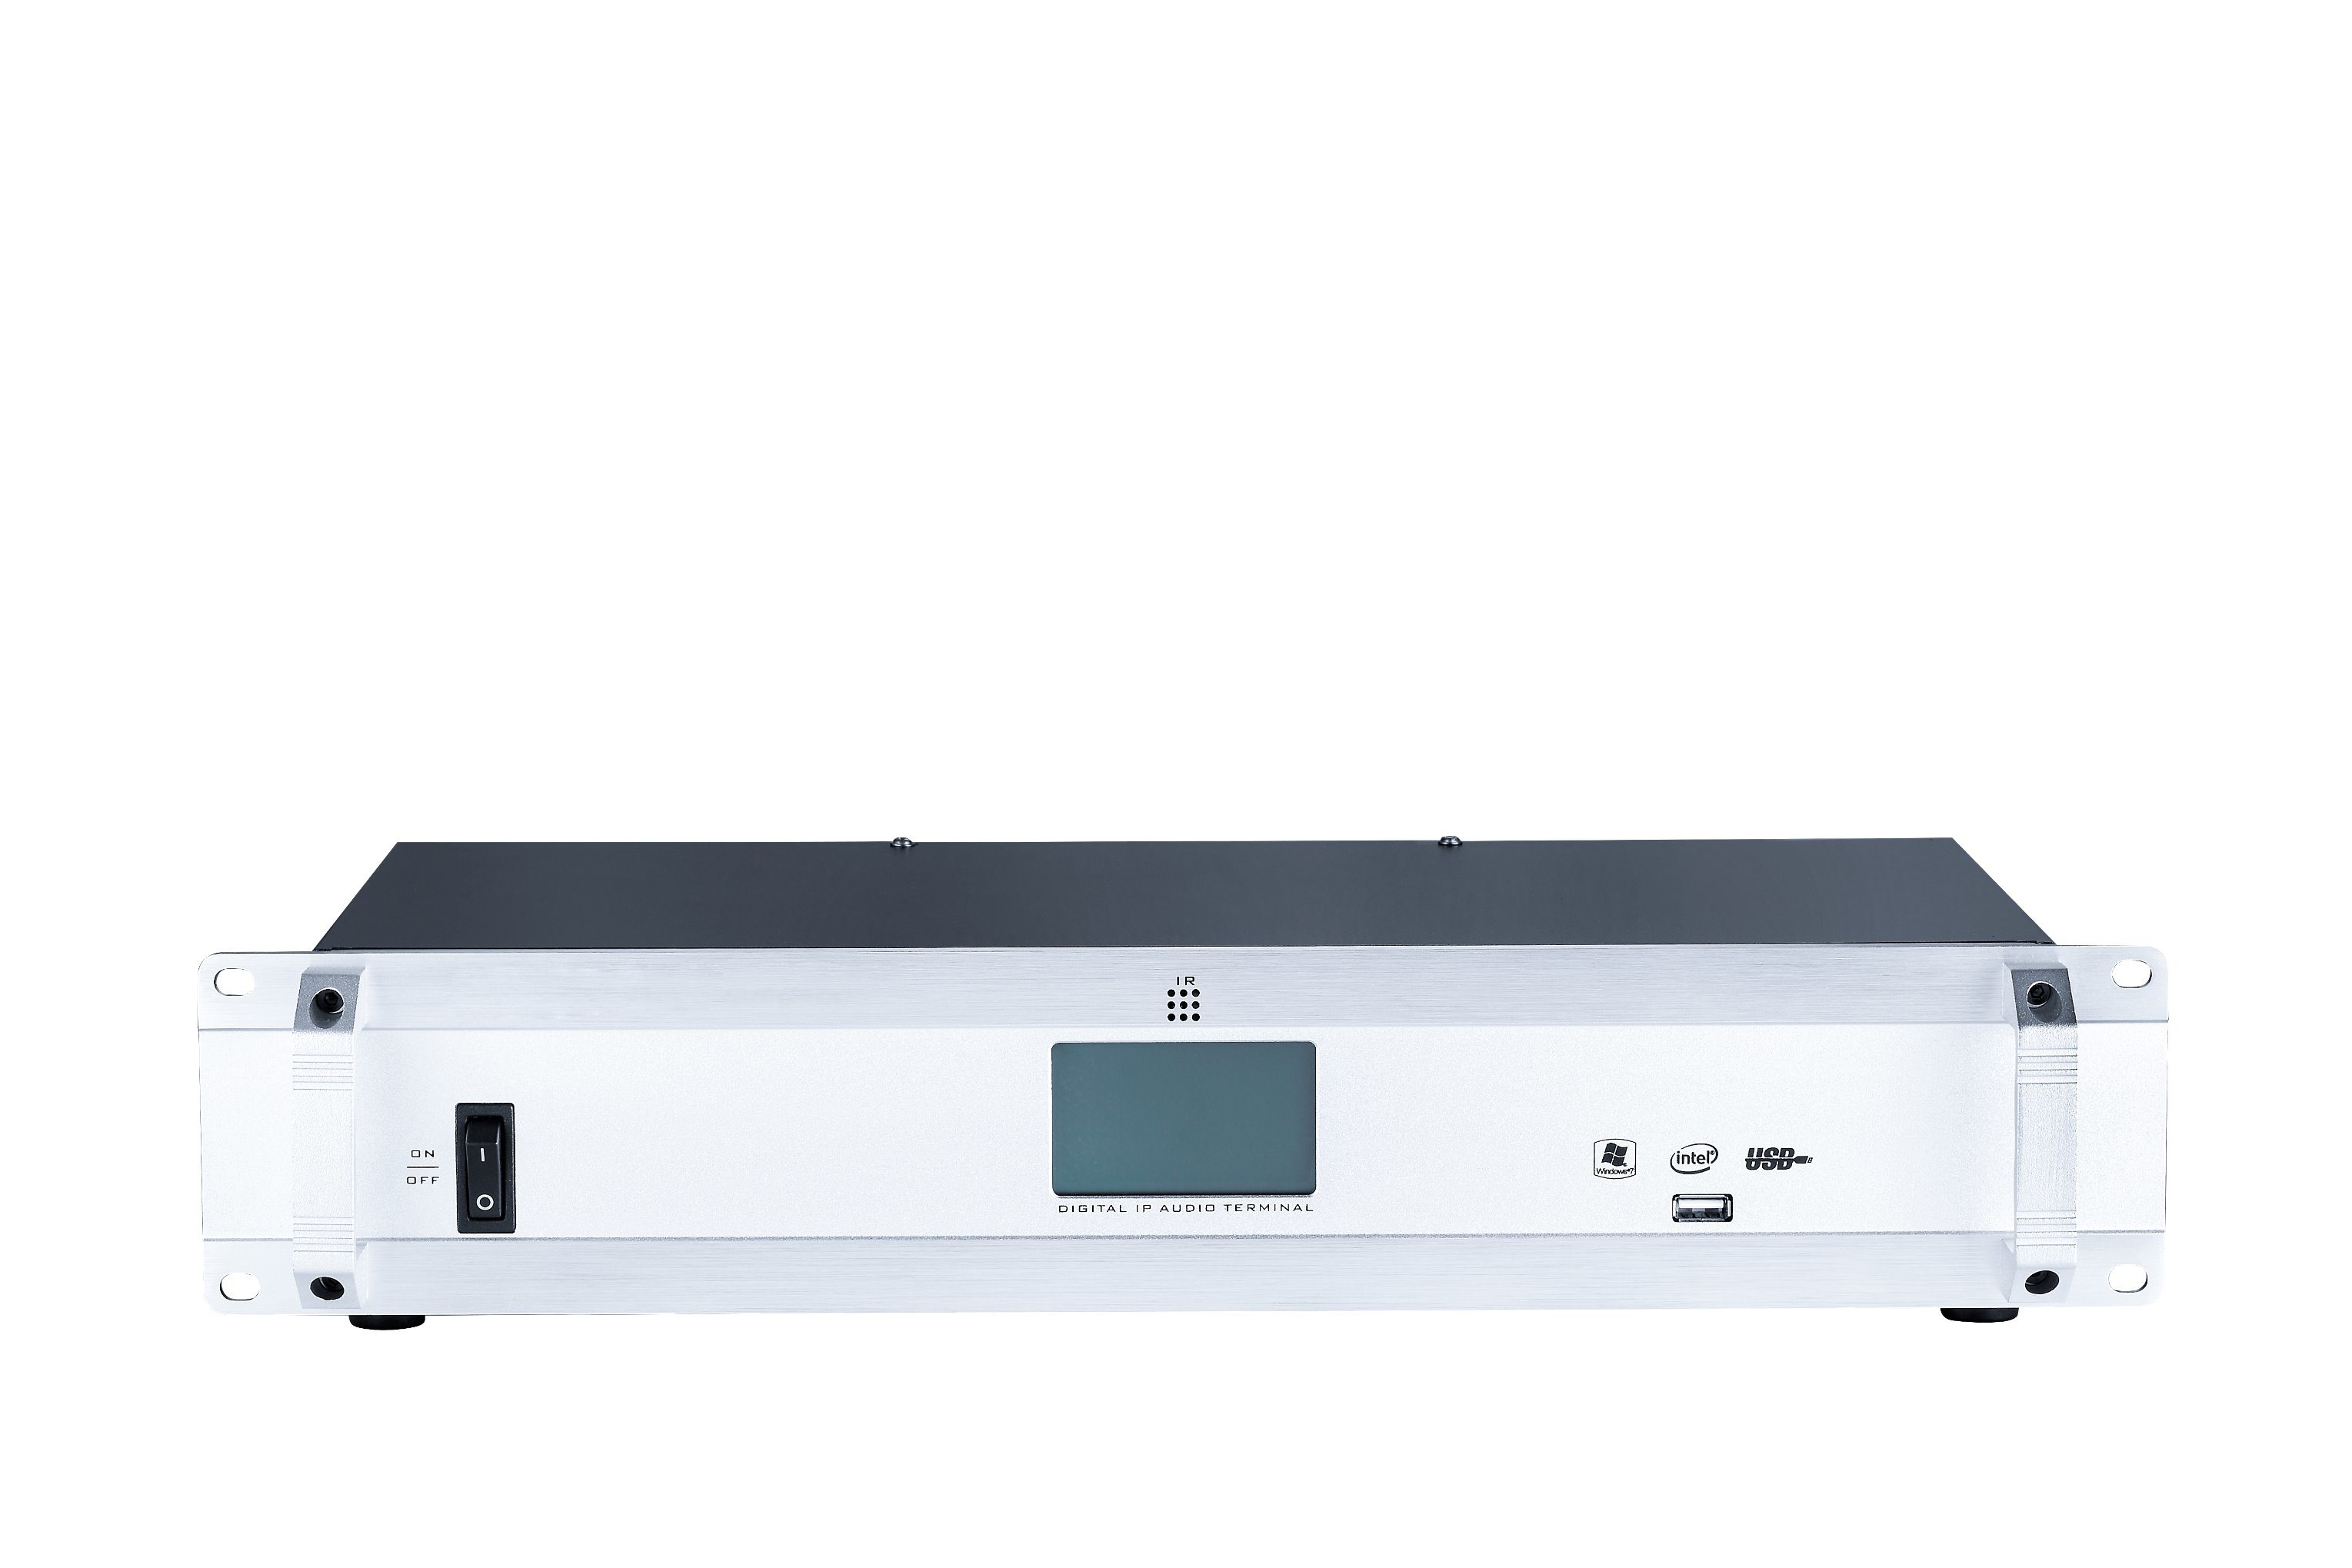 IP Network Decoder SE-5815 in Rack